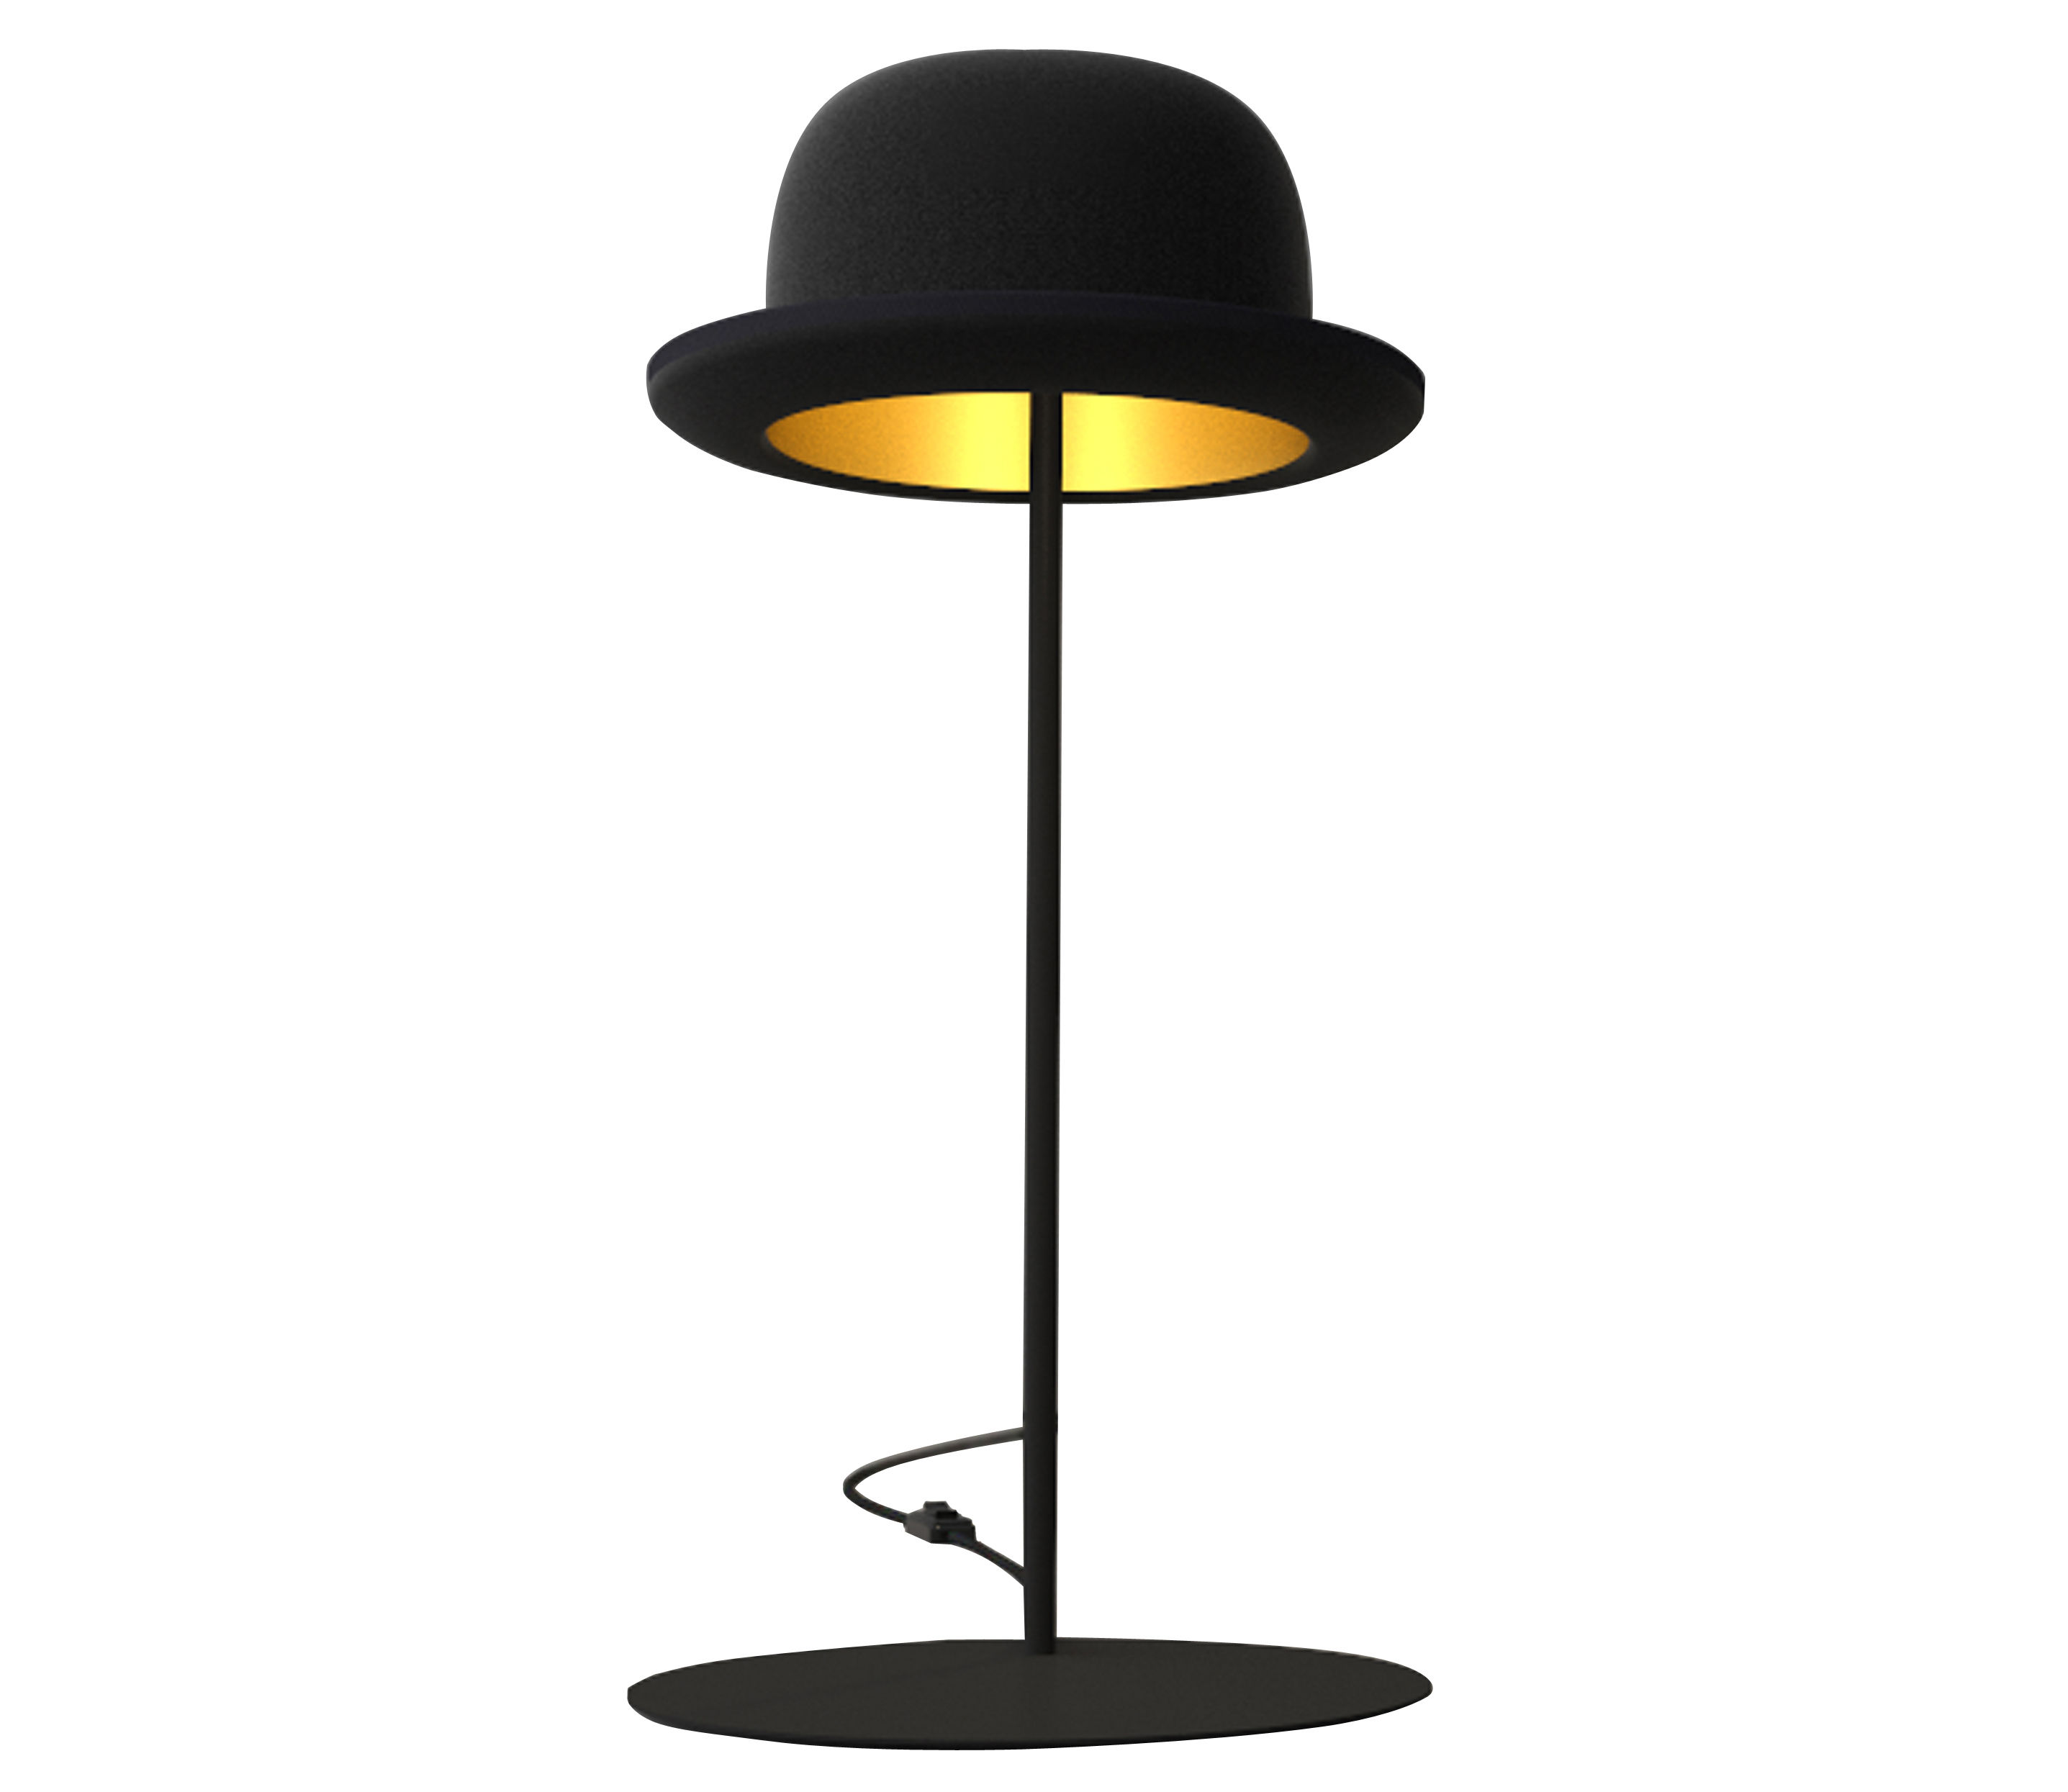 239521f46c4 Jeeves Table lamp - Innermost. Variation   Black bowler   Gold inside ...